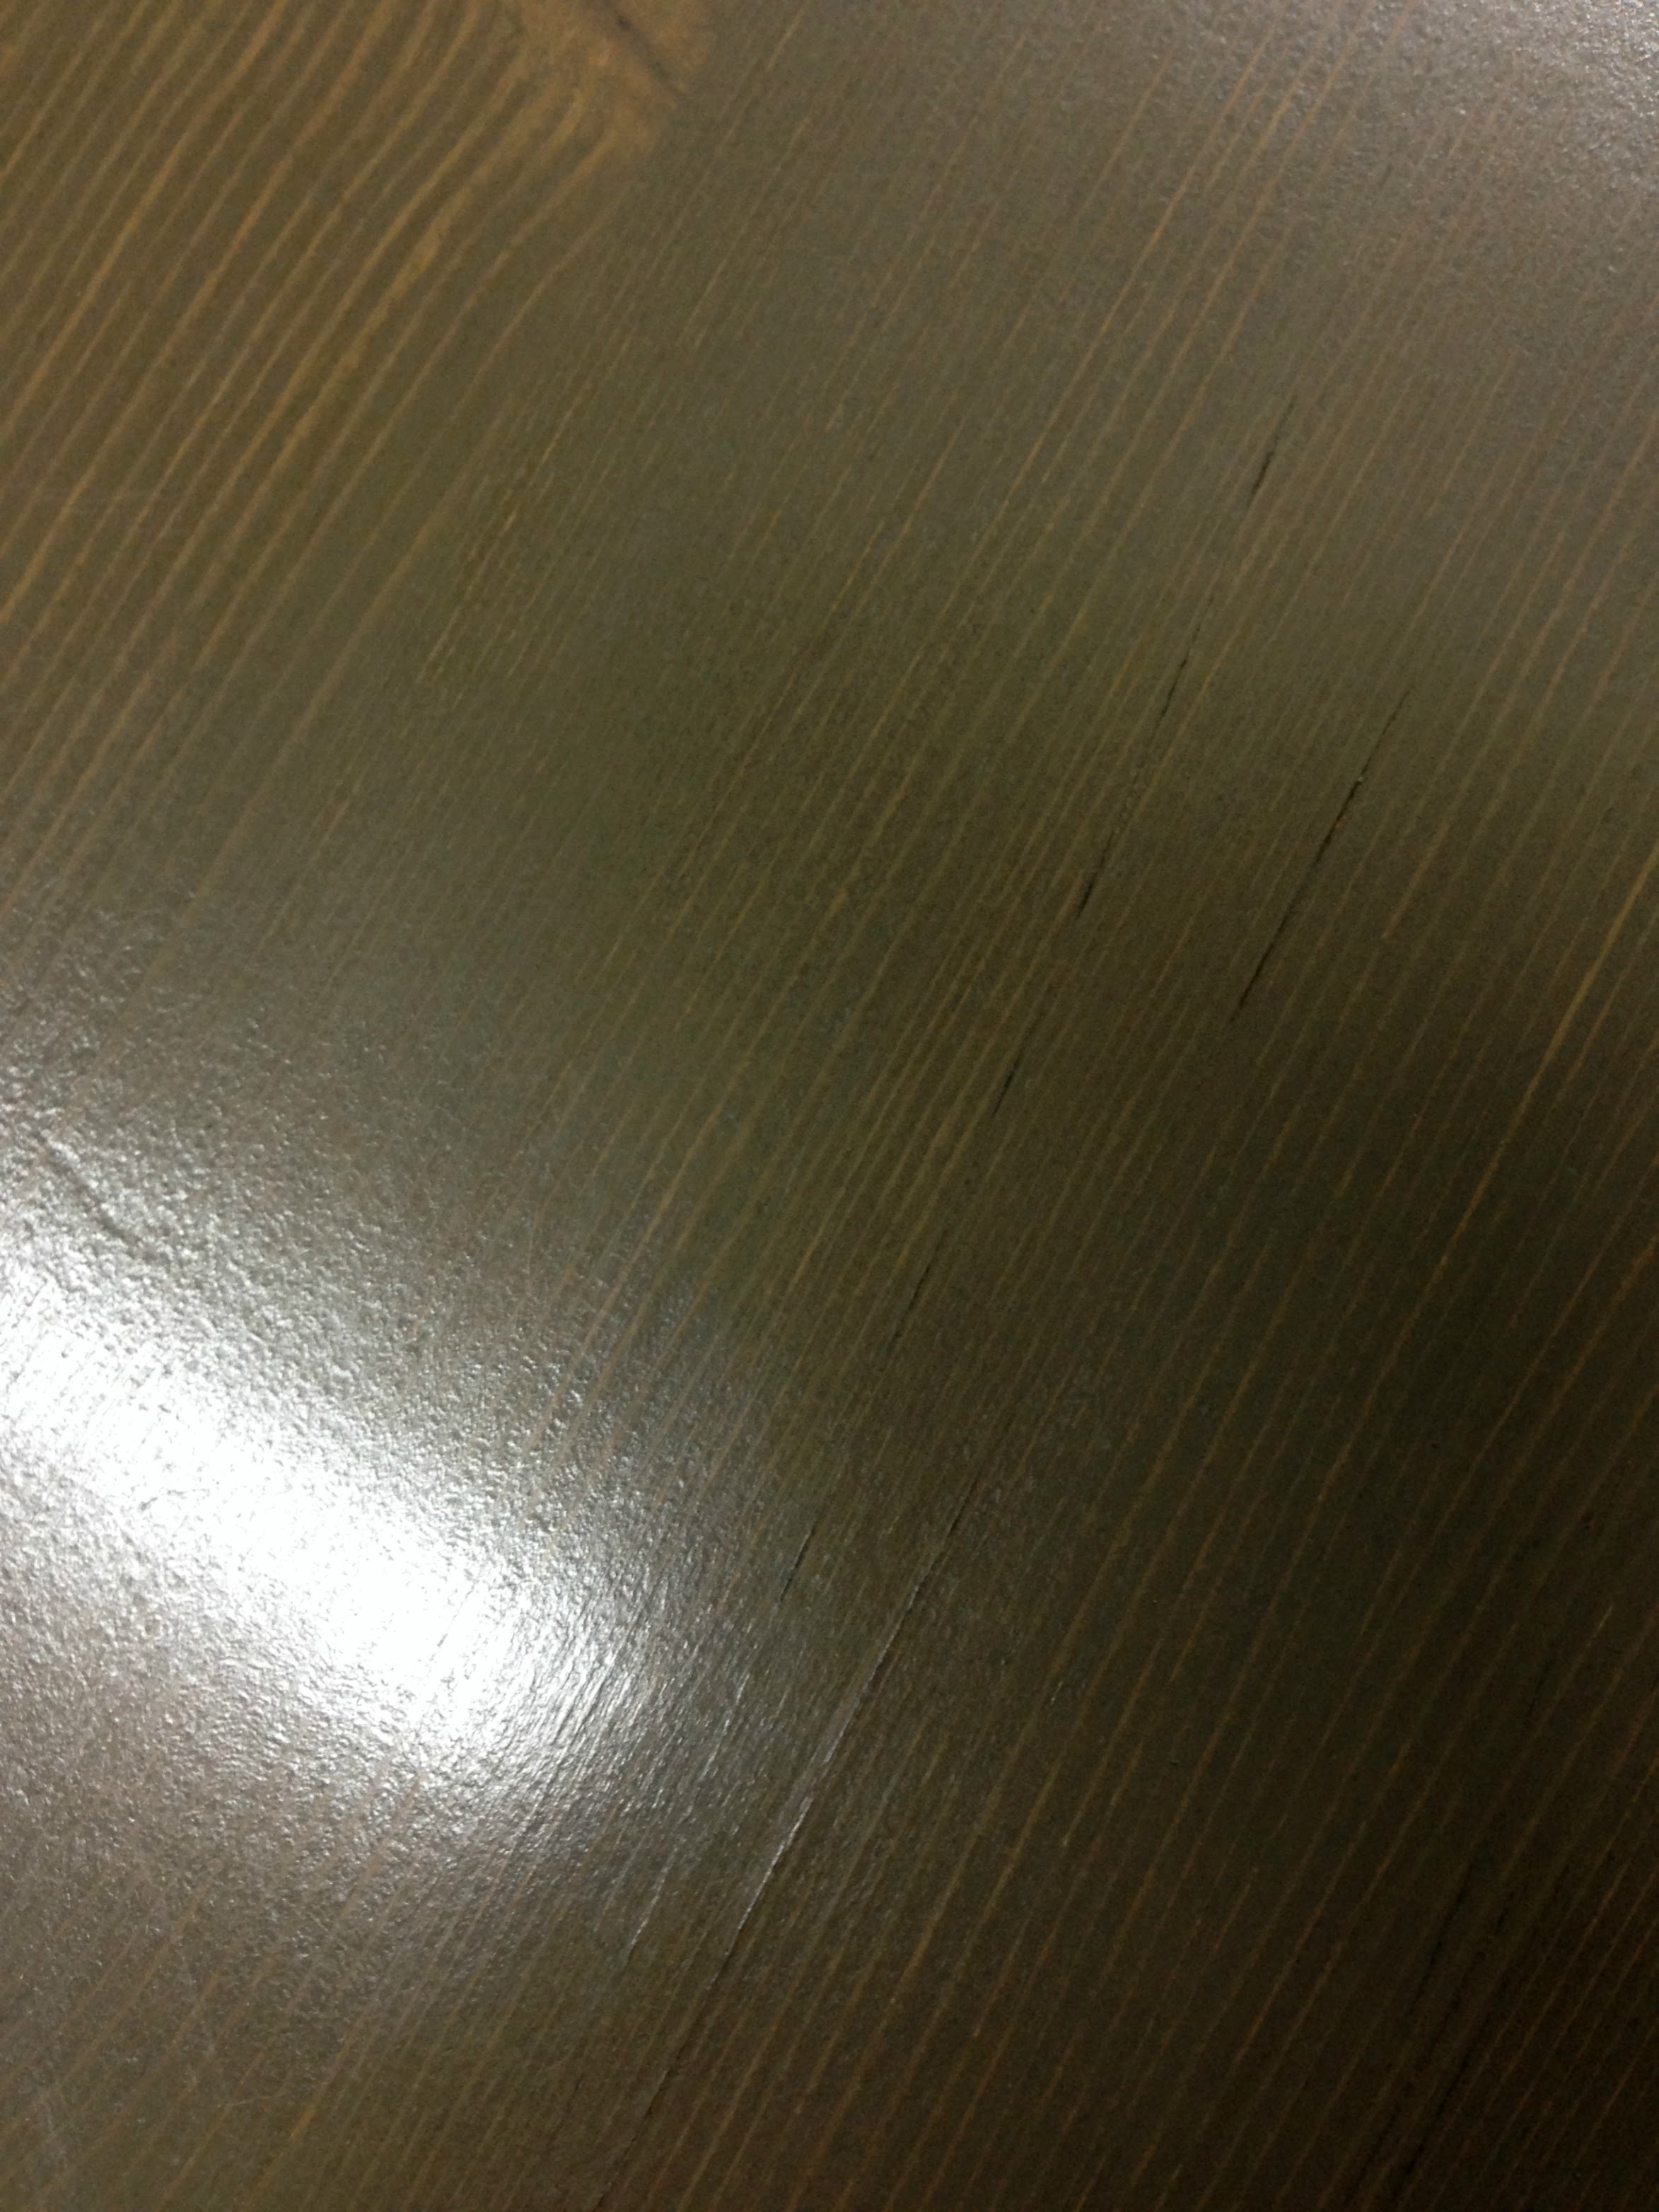 waxed table